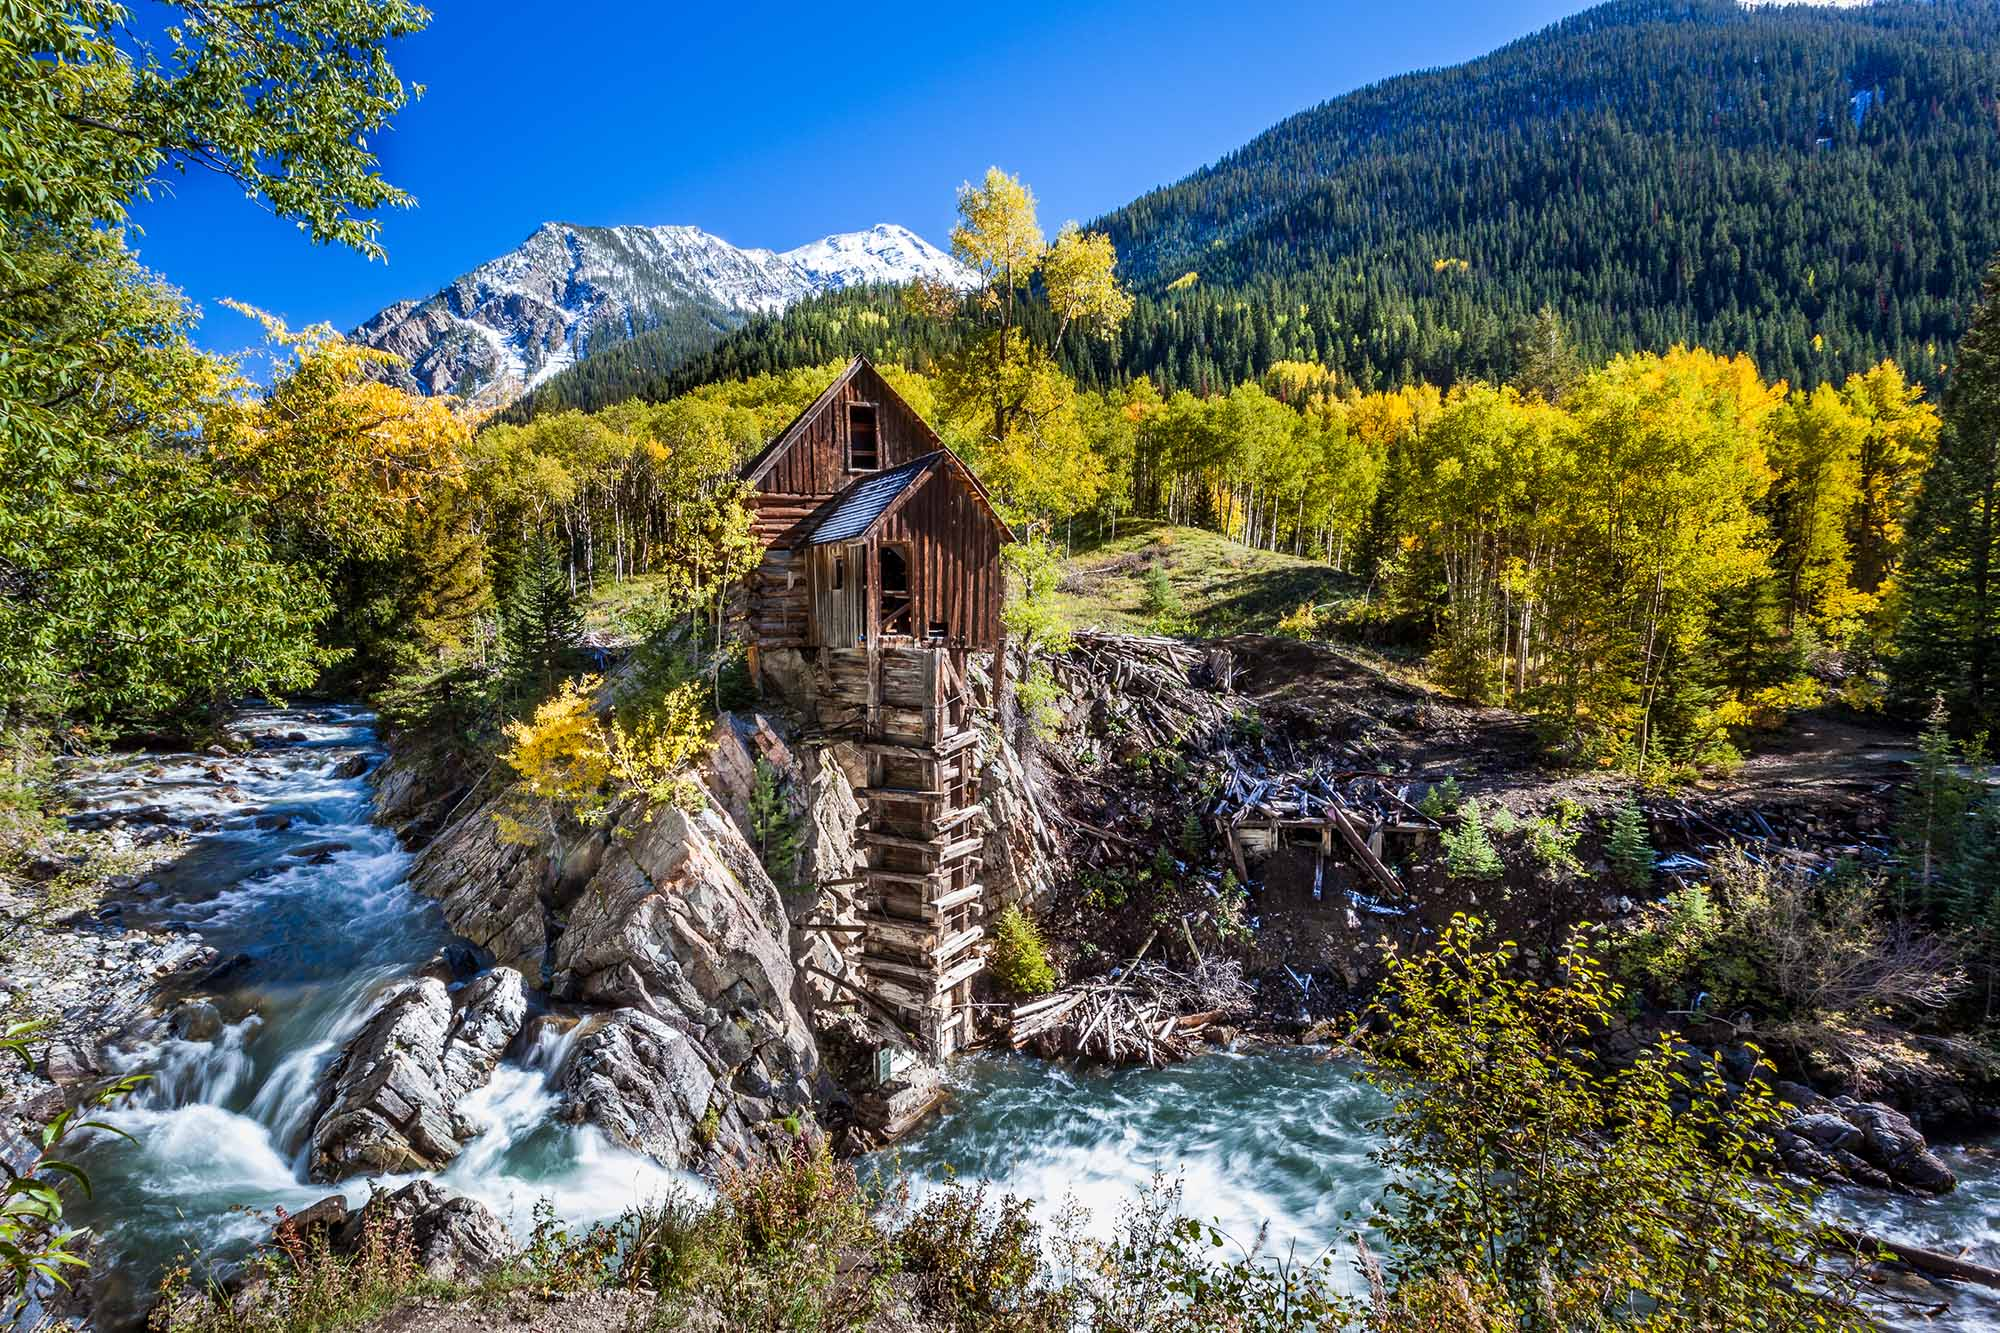 An abandoned wooden mill clings to a clifftop overlooking a churning river.